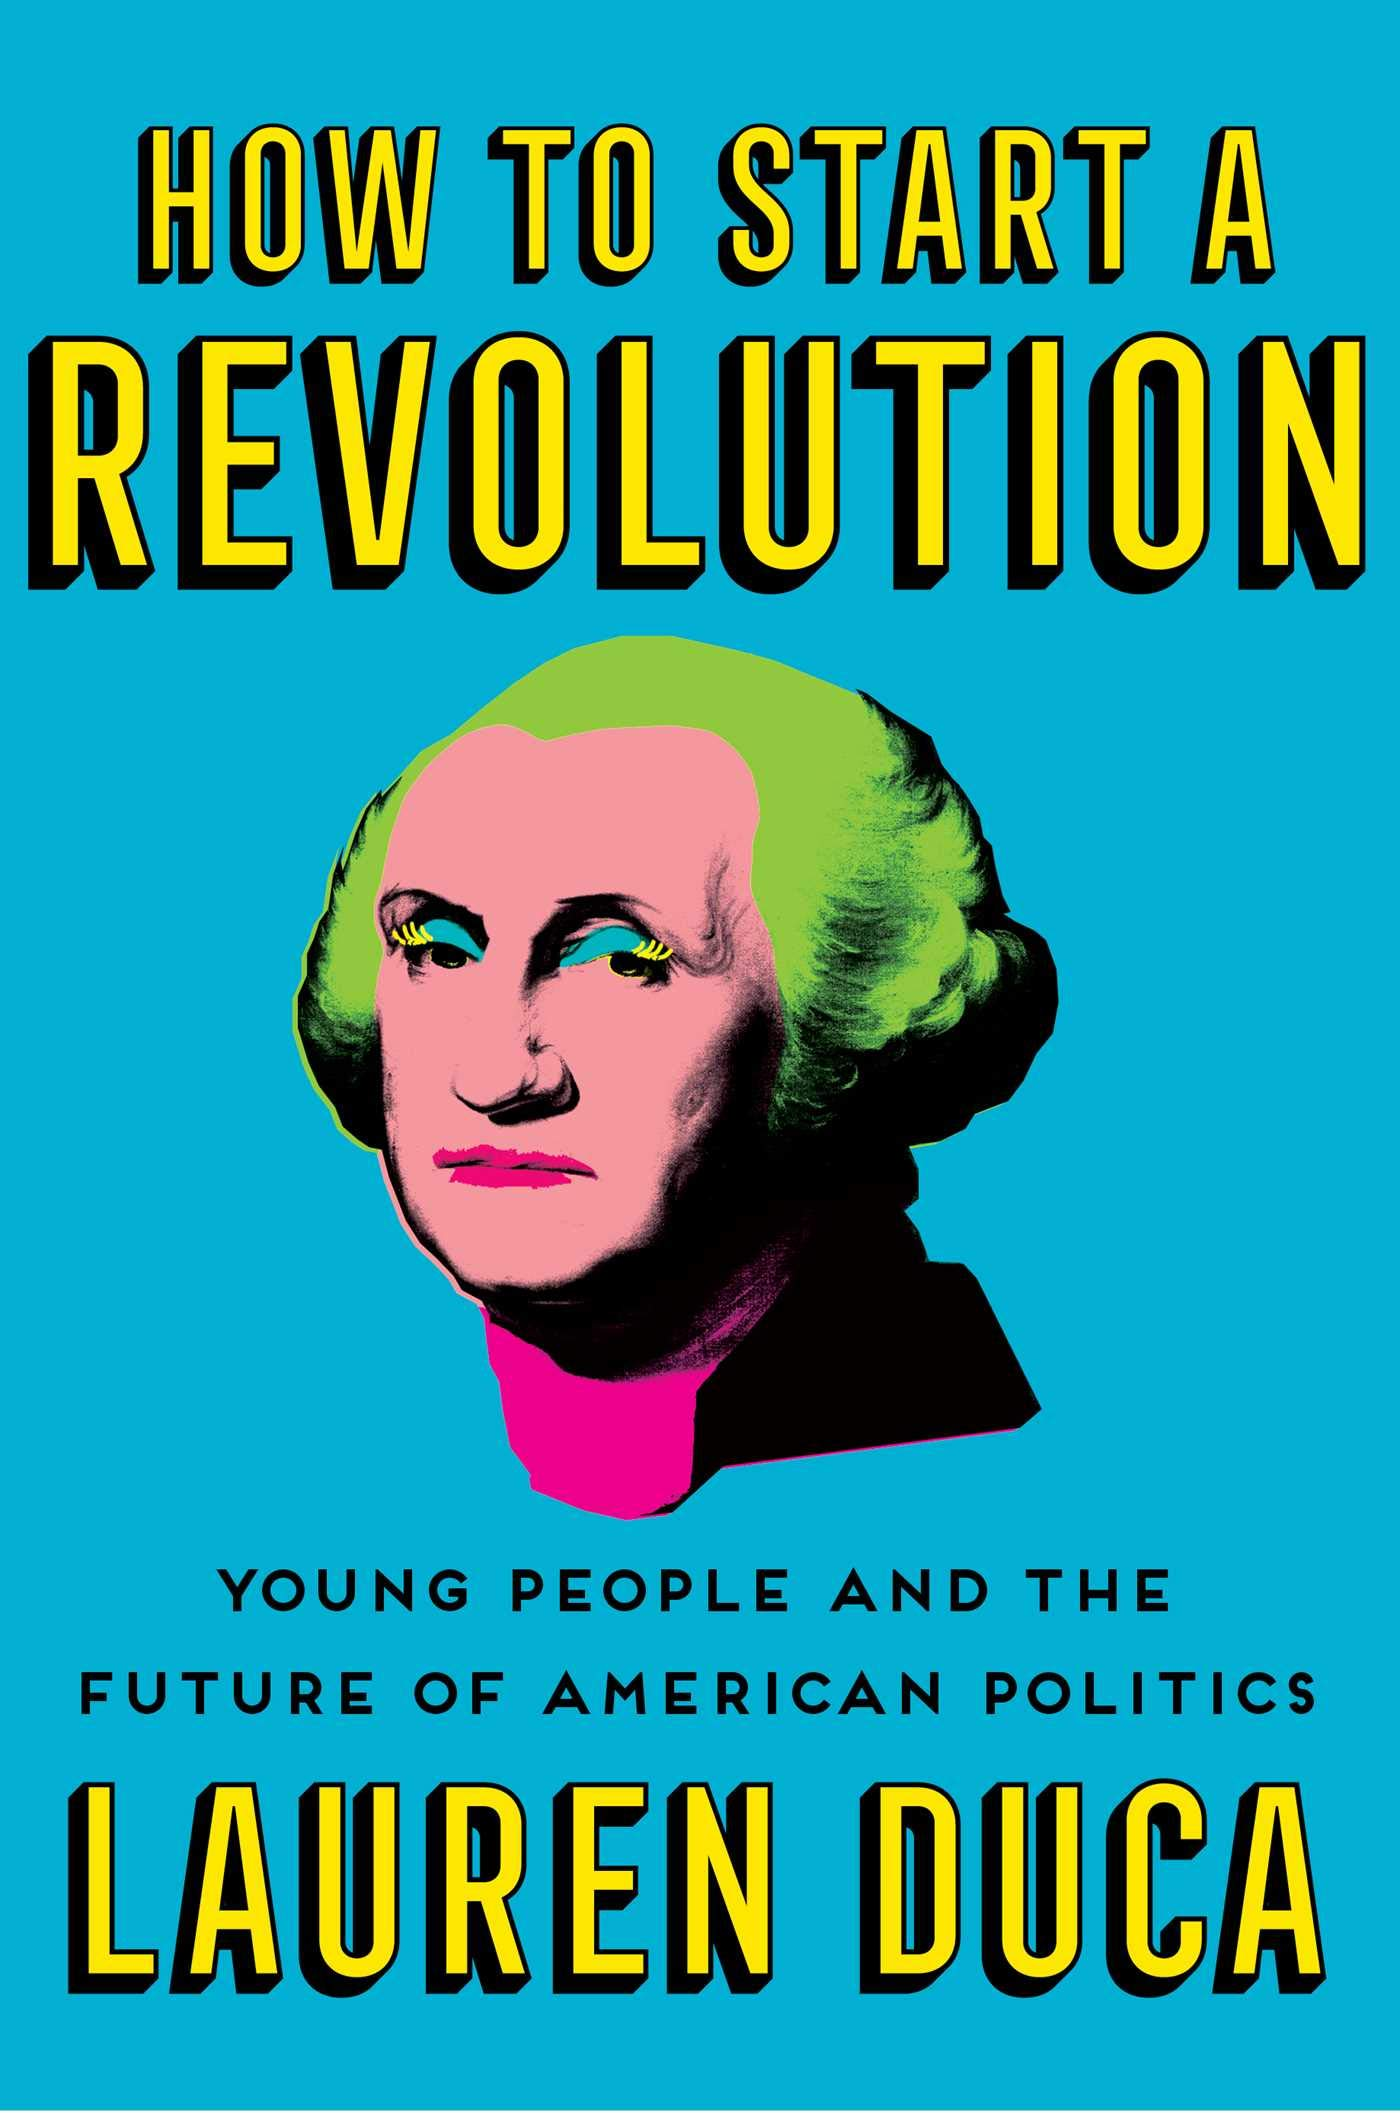 Book Launch: How To Start A Revolution by Lauren Duca (Brooklyn Book Festival Bookends Event)